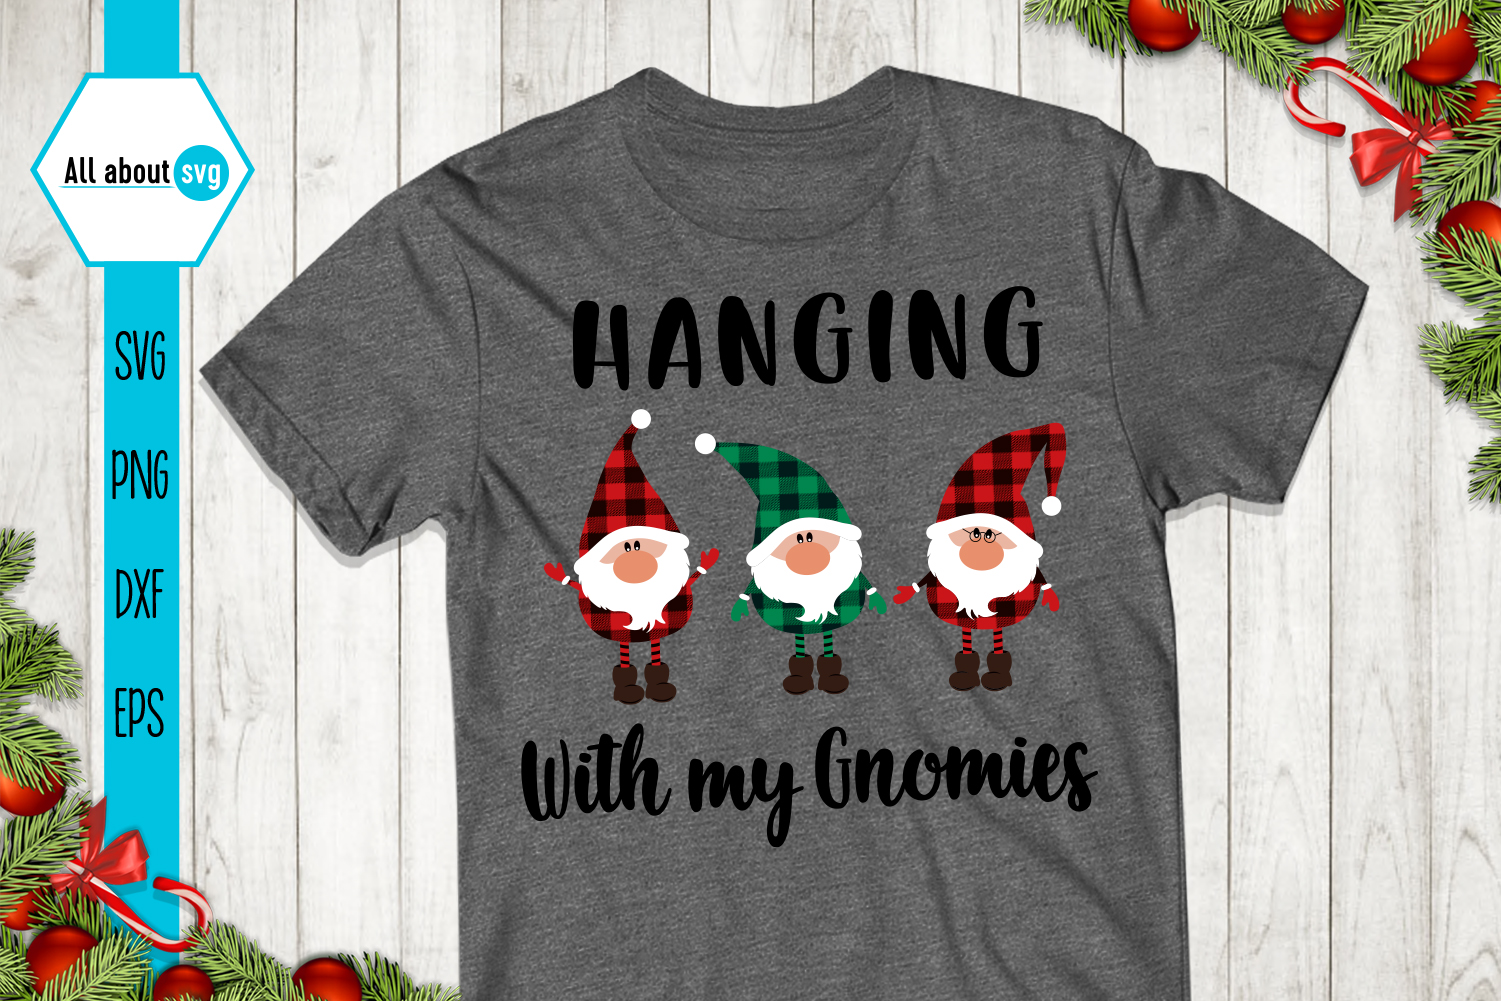 Hanging With My Gnomies Buffalo Plaid Svg example image 3